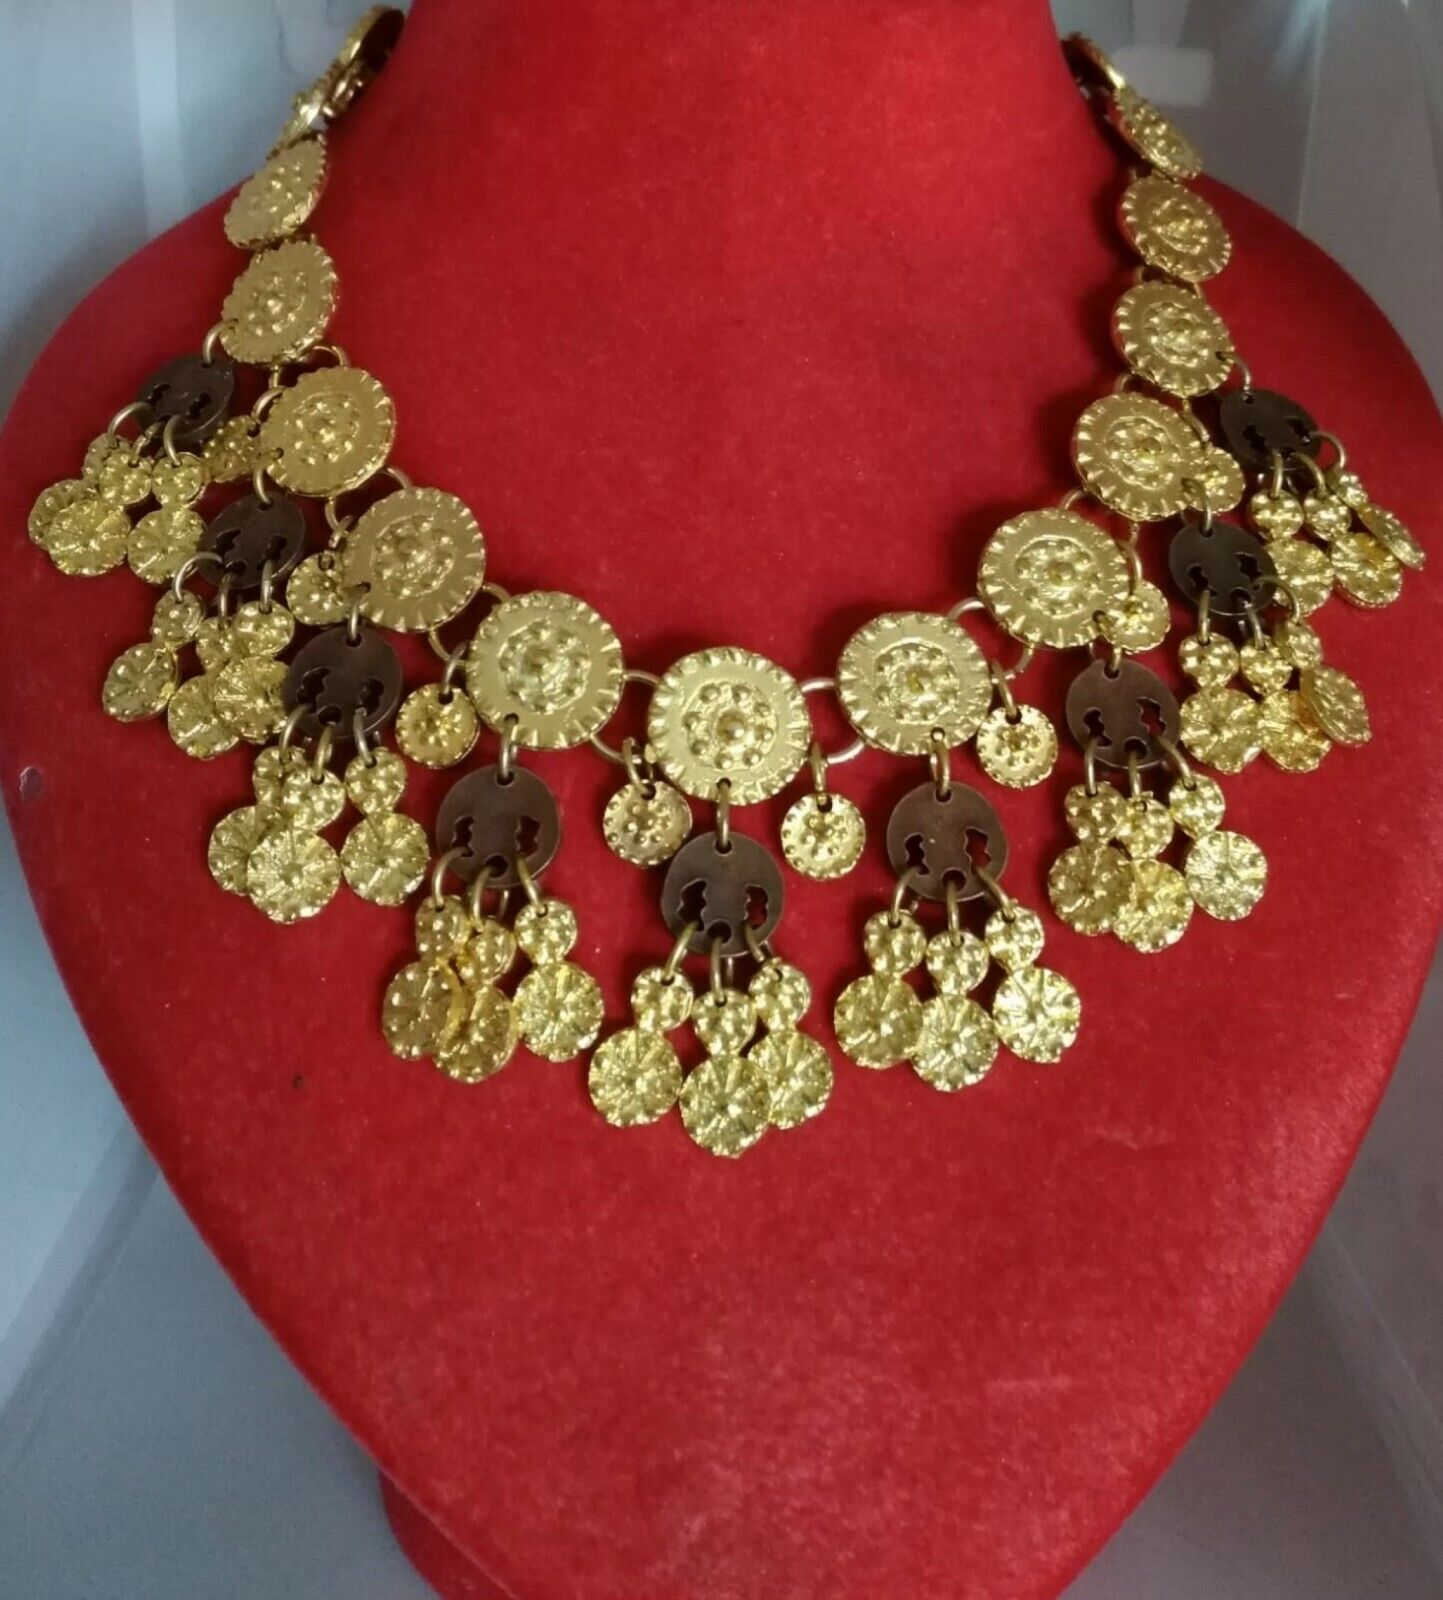 Ancient Necklace Vintage Years 70/80 Metal Color Gold and Brown Woman Girl-show original title